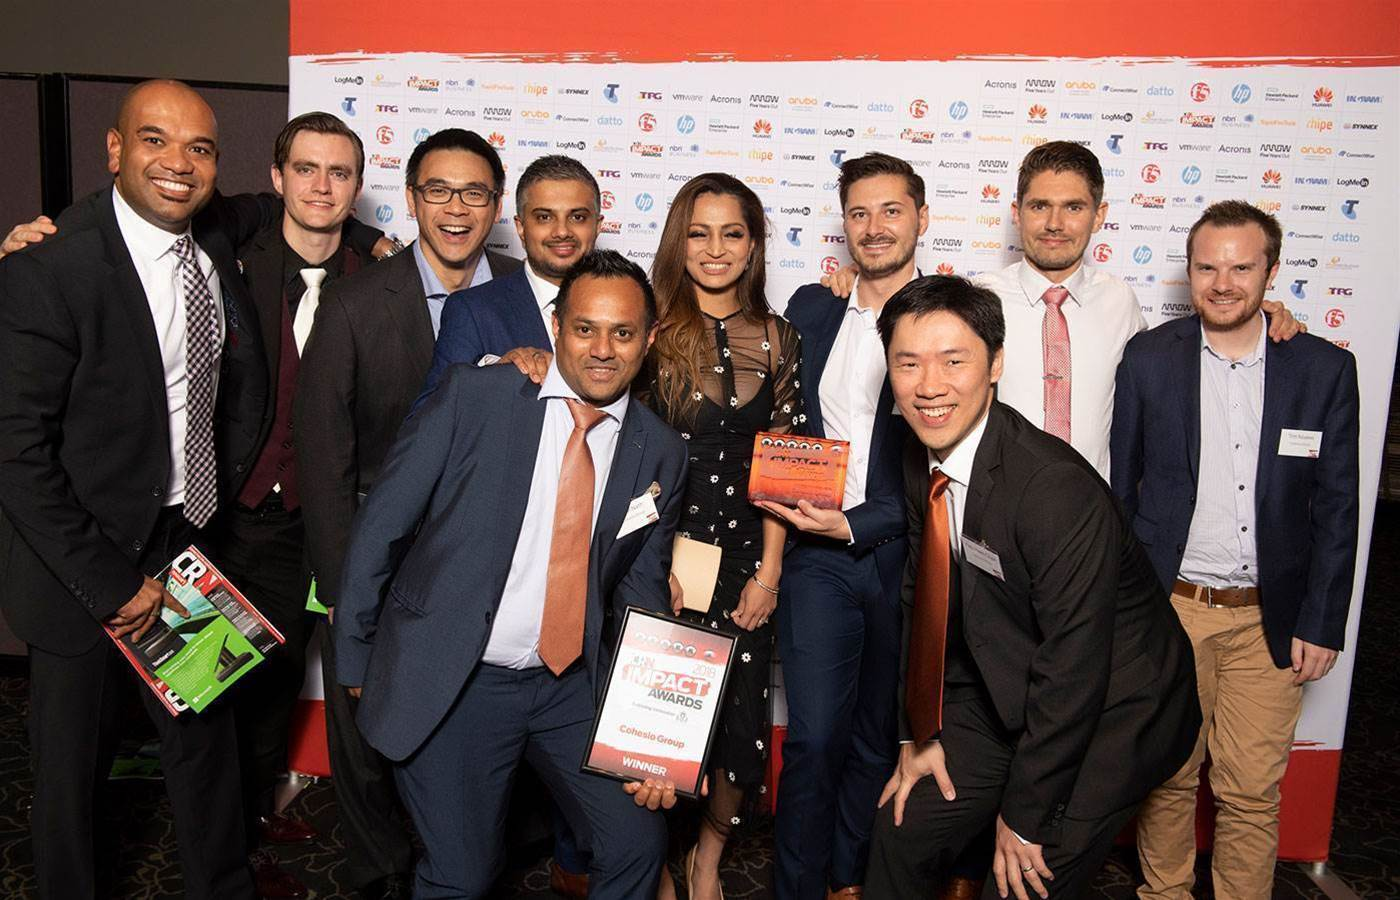 Meet all the winners of the 2018 CRN Impact Awards